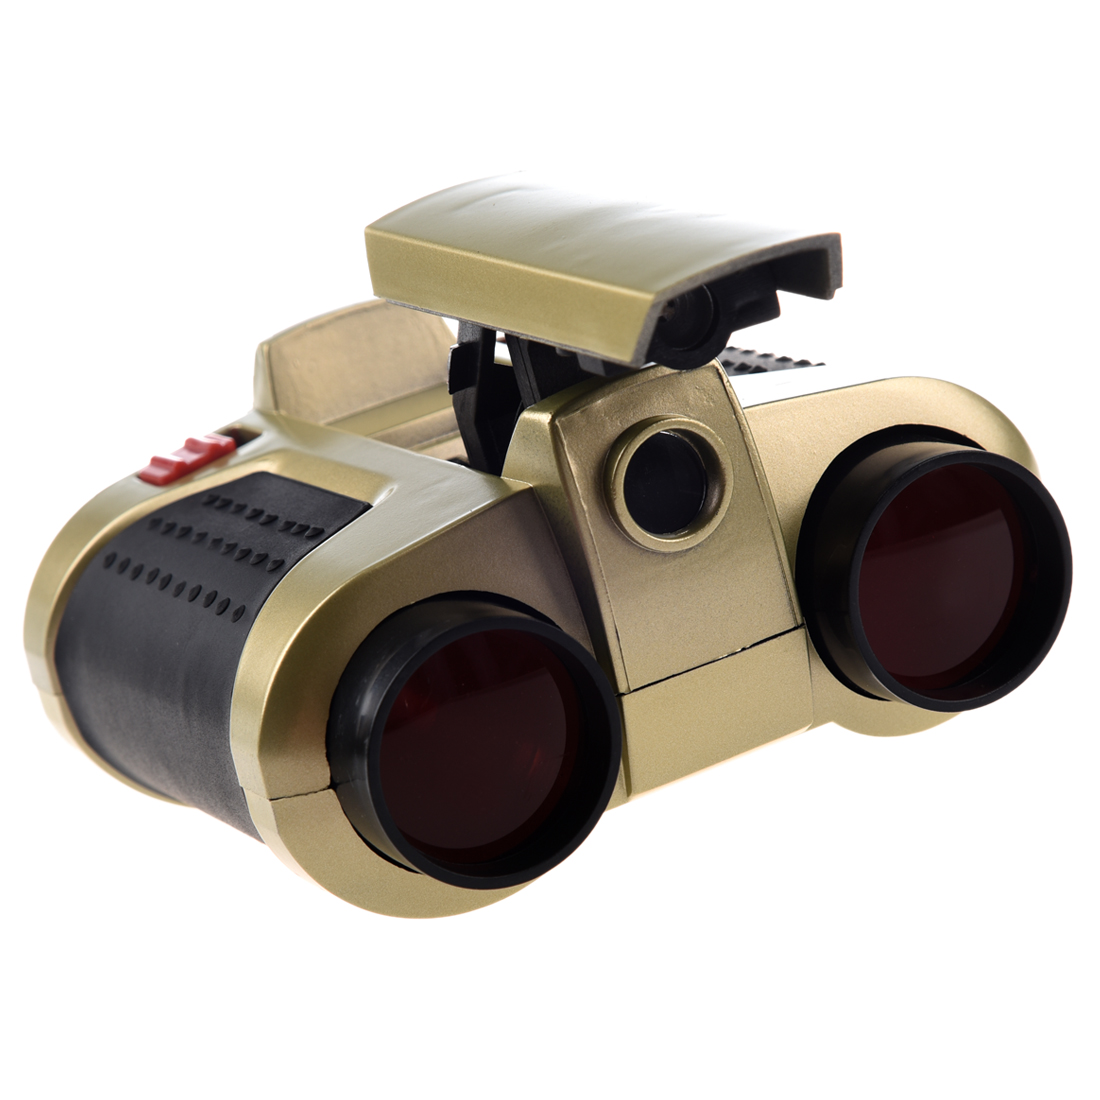 Durable 4x30 Night Scope font b Binoculars b font w POP Up Light